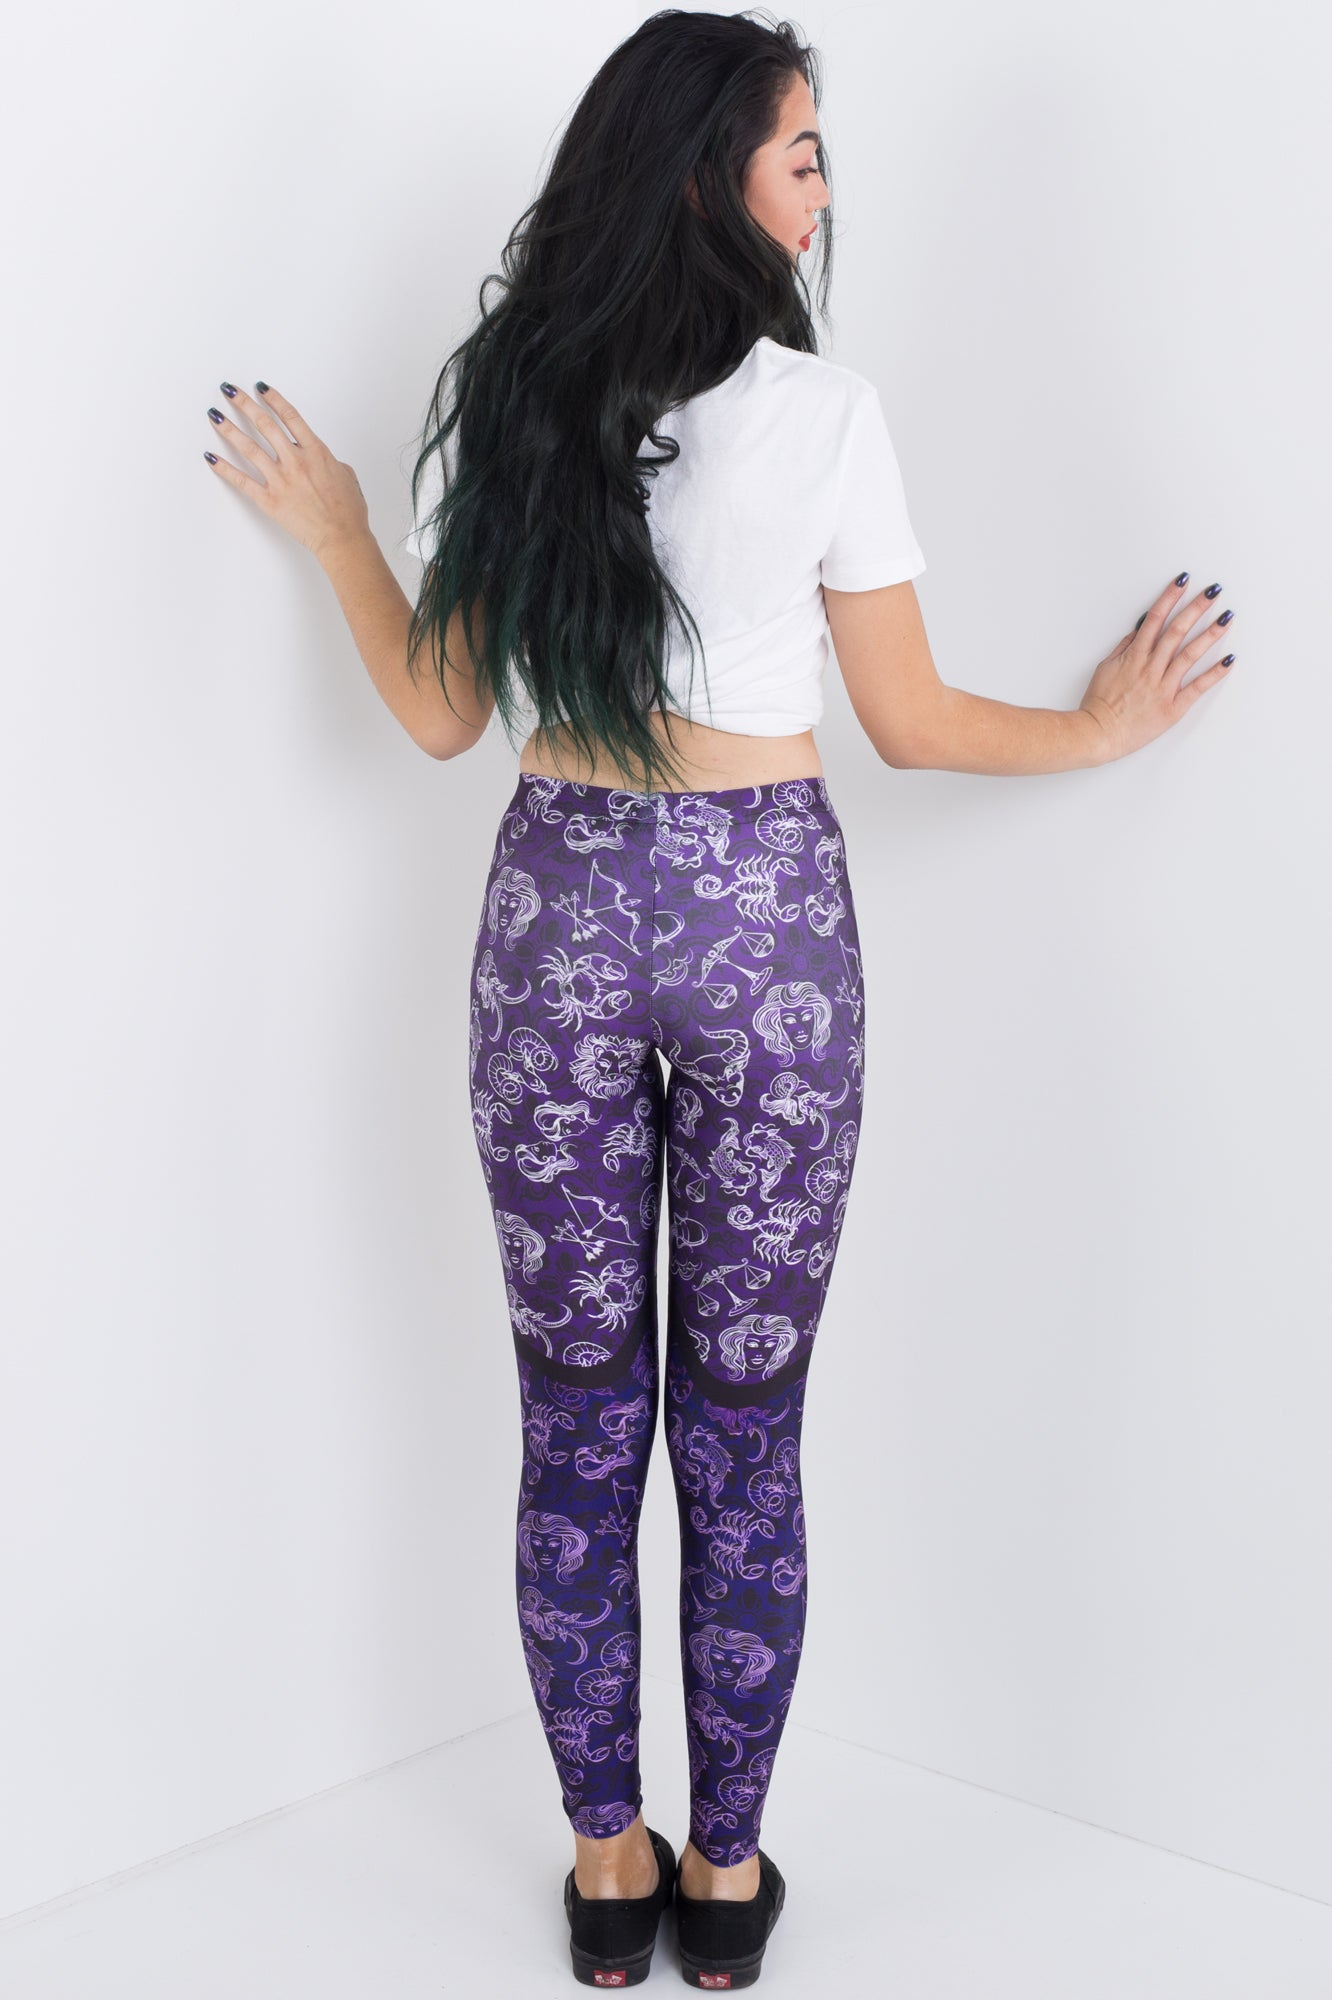 Western Zodiac Icon Leggings